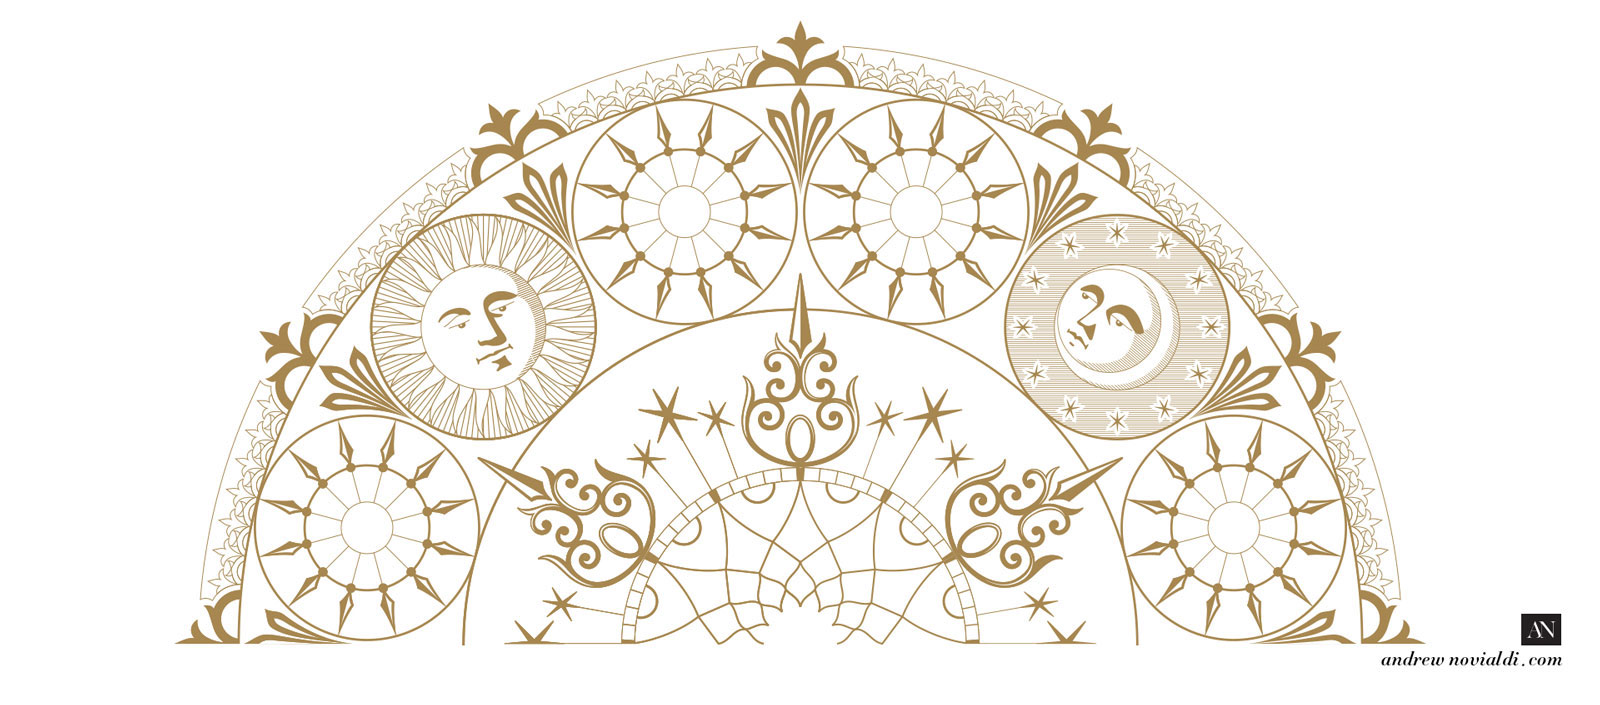 Renaissance Style of Clockface Sun and Moon Design